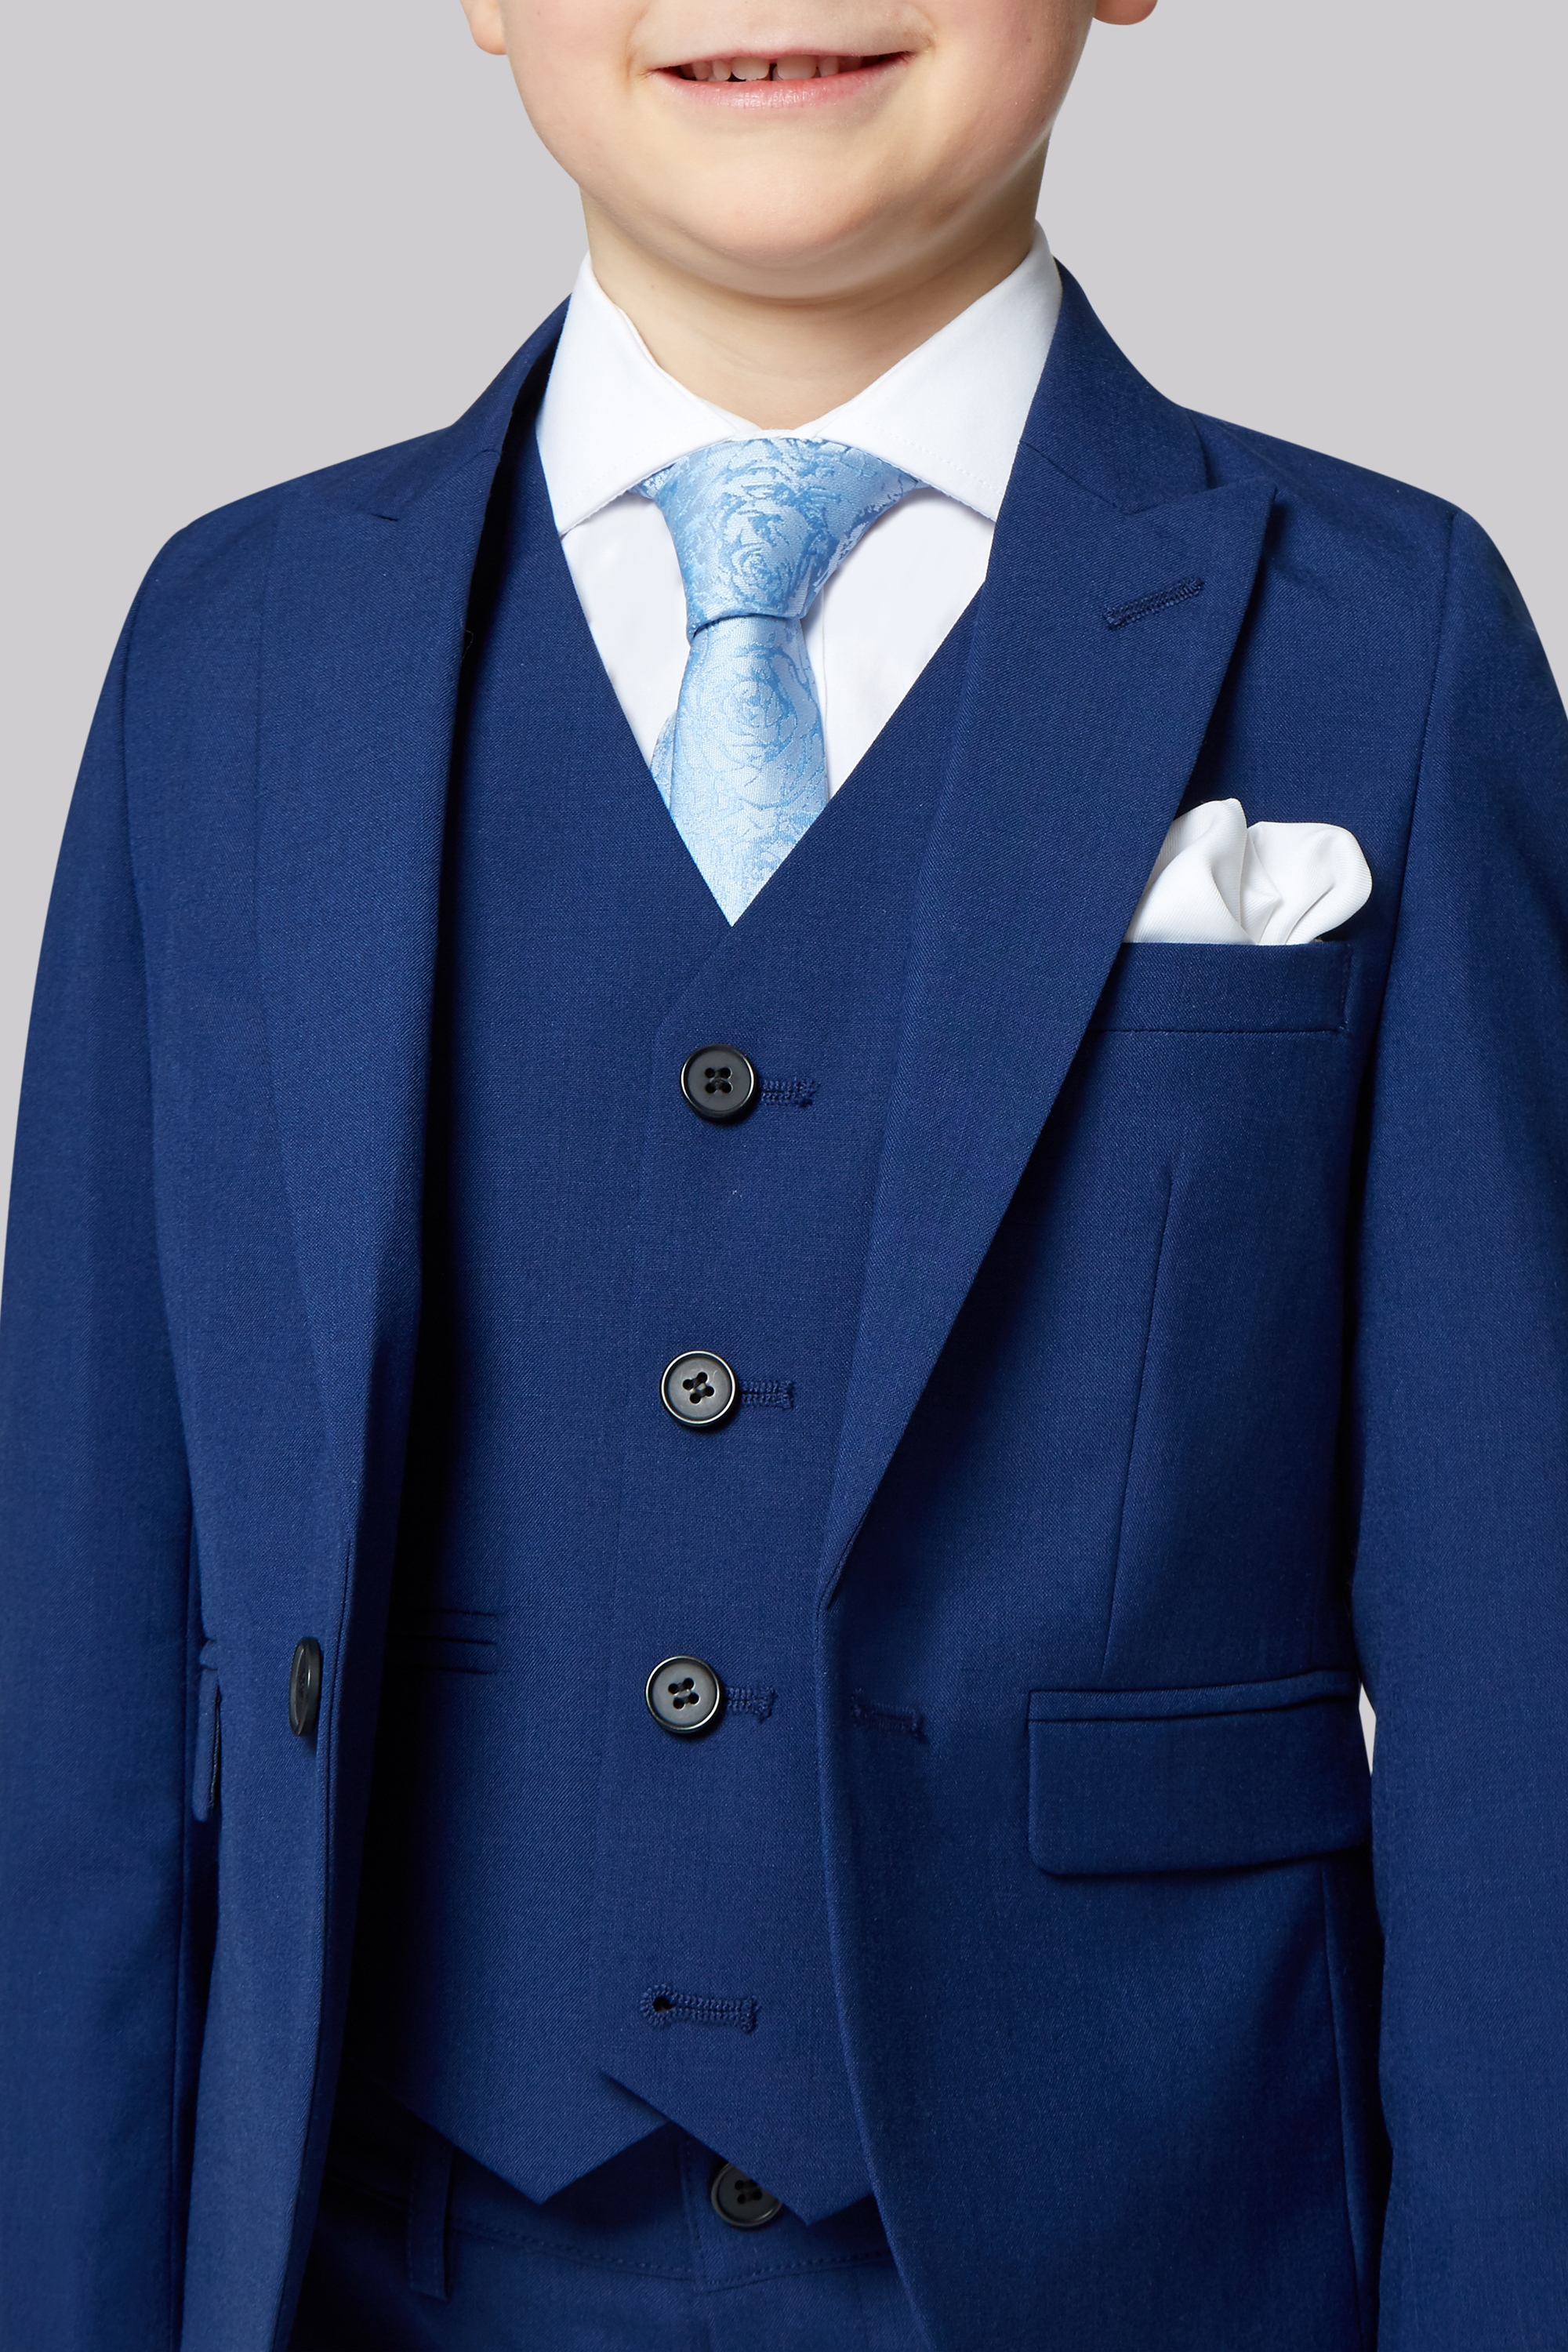 tubidyindir.ga we offer a complete selection of the finest names in kids suits boys white tuxedo for kids kids blue suit boys royal blue suit boys tuxedo suit boys formal suits boys charcoal suit cheap boys dress suits and much more.